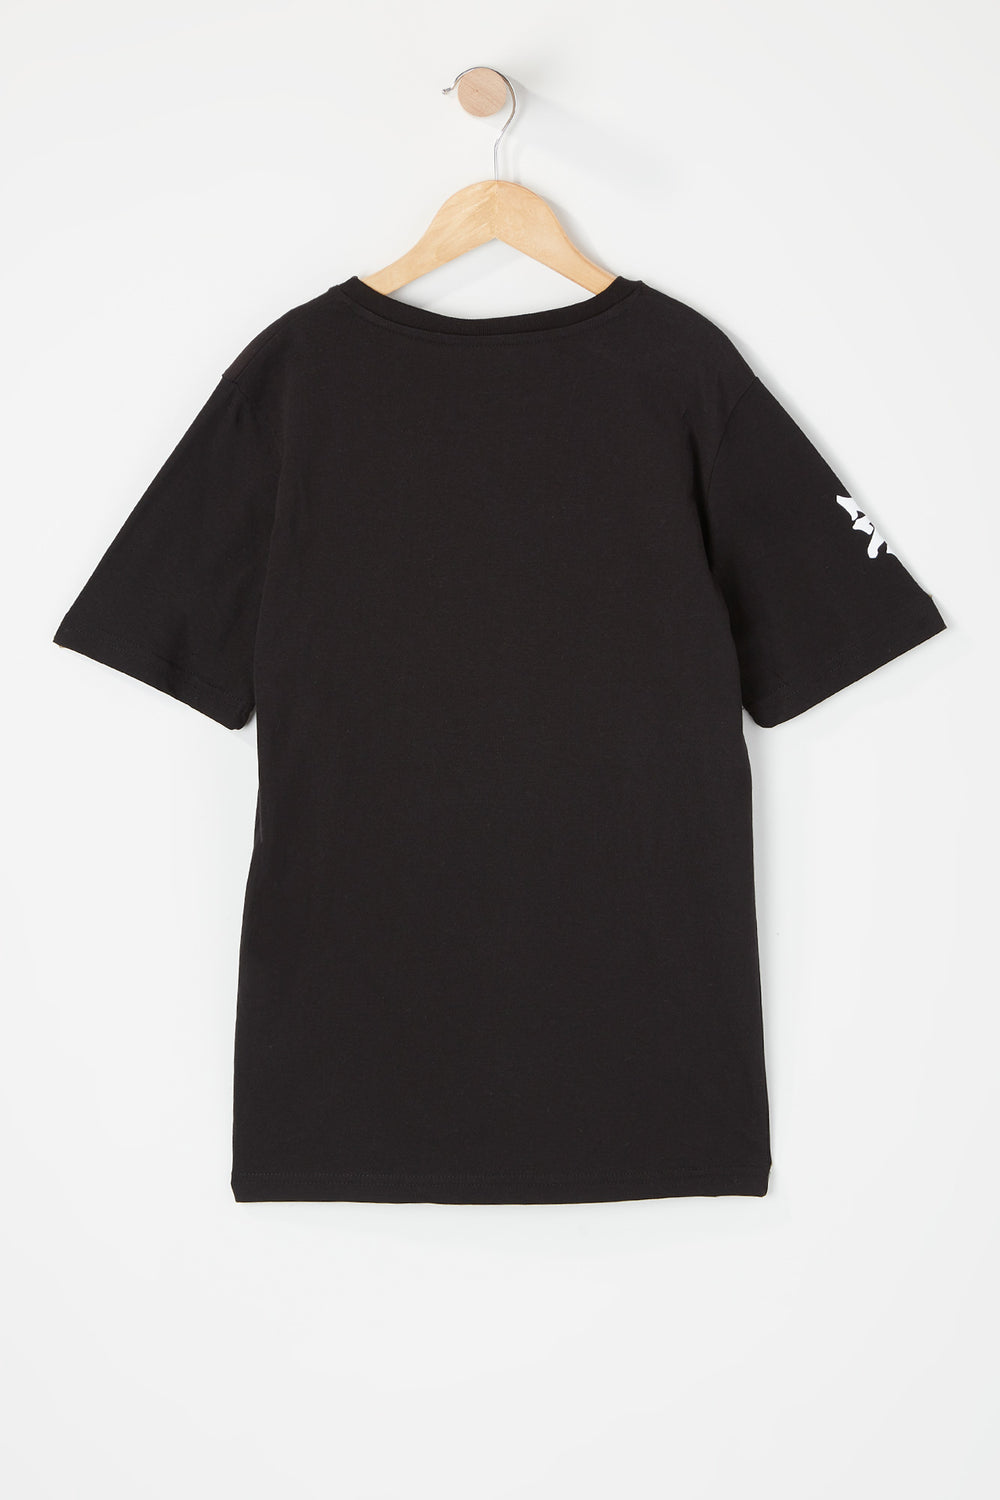 T-Shirt Logo Zoo York Junior Noir